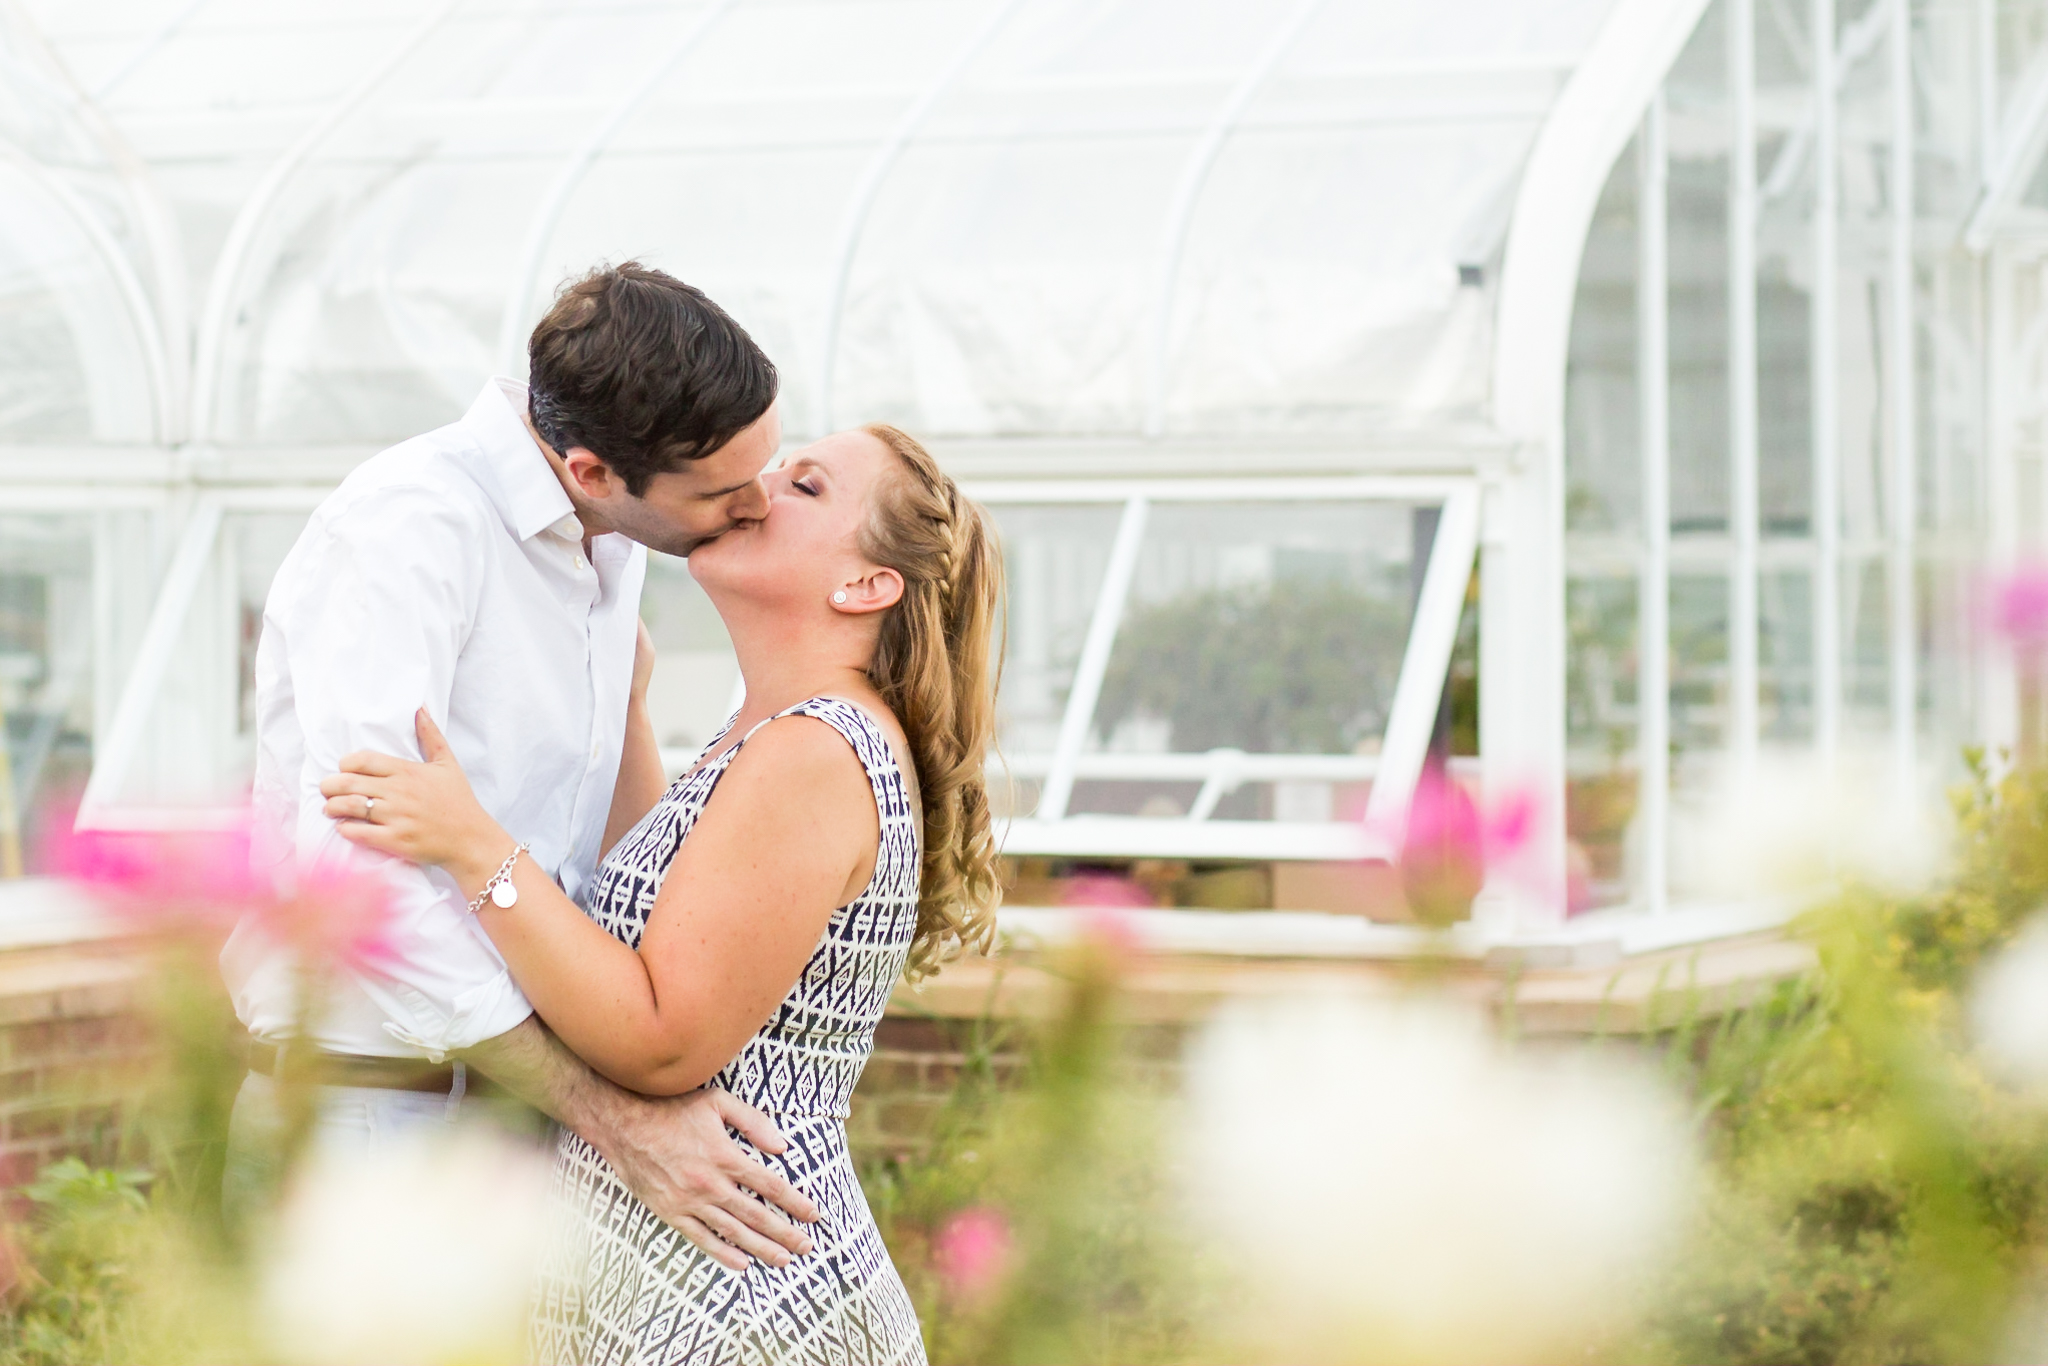 West Hartford, CT Engagement Session at Elizabeth Park | Shaina Lee Photography | CT NYC + Destination Wedding + Engagement Photographer